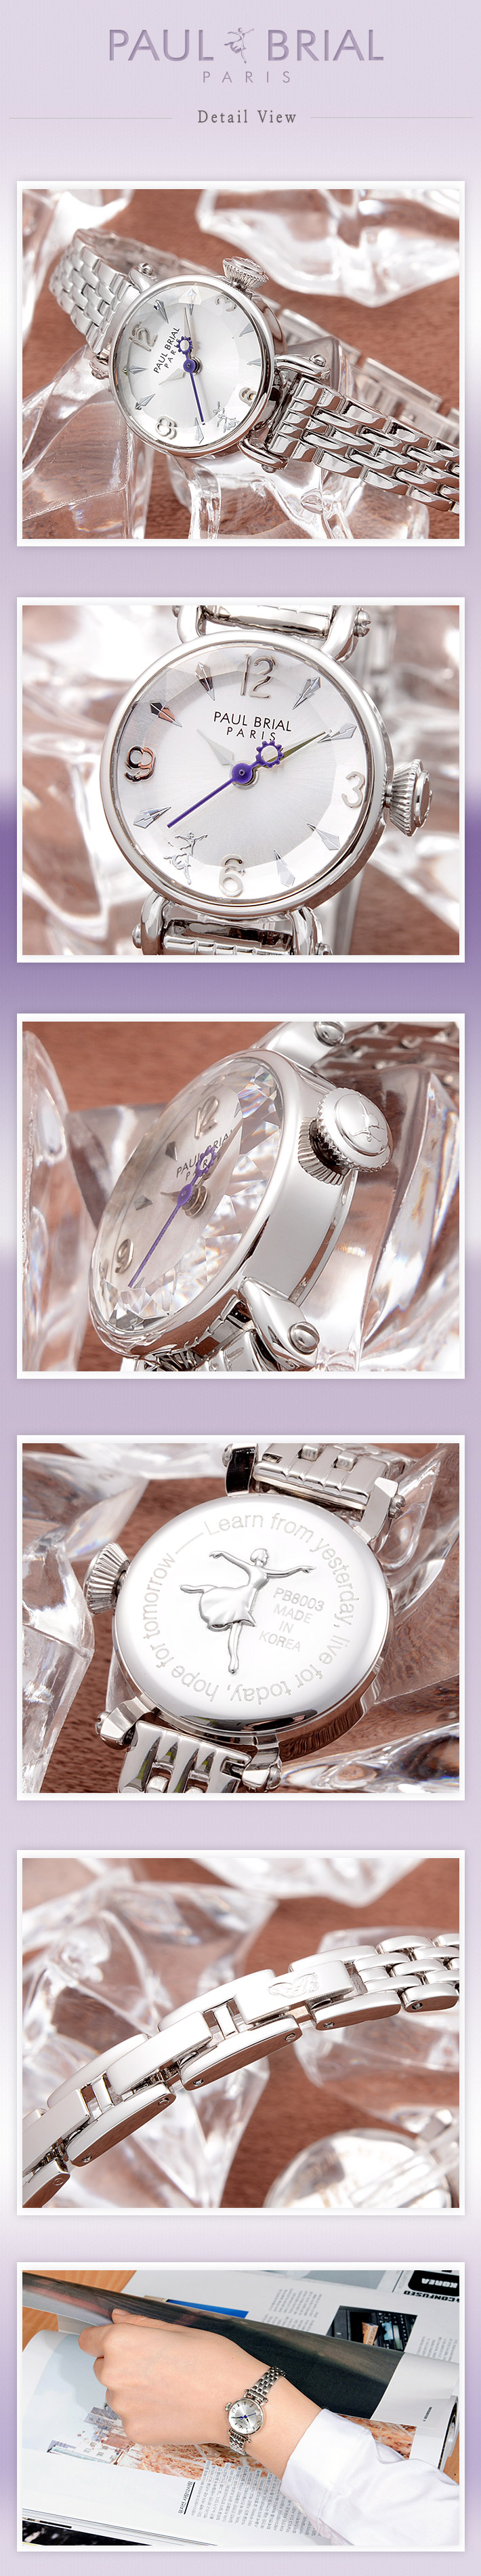 [ PAUL BRIAL ] KOREA MADE HIGH QUALITY LADIES SILVER METAL BAND WATCH PB8003WS TOULOUSE